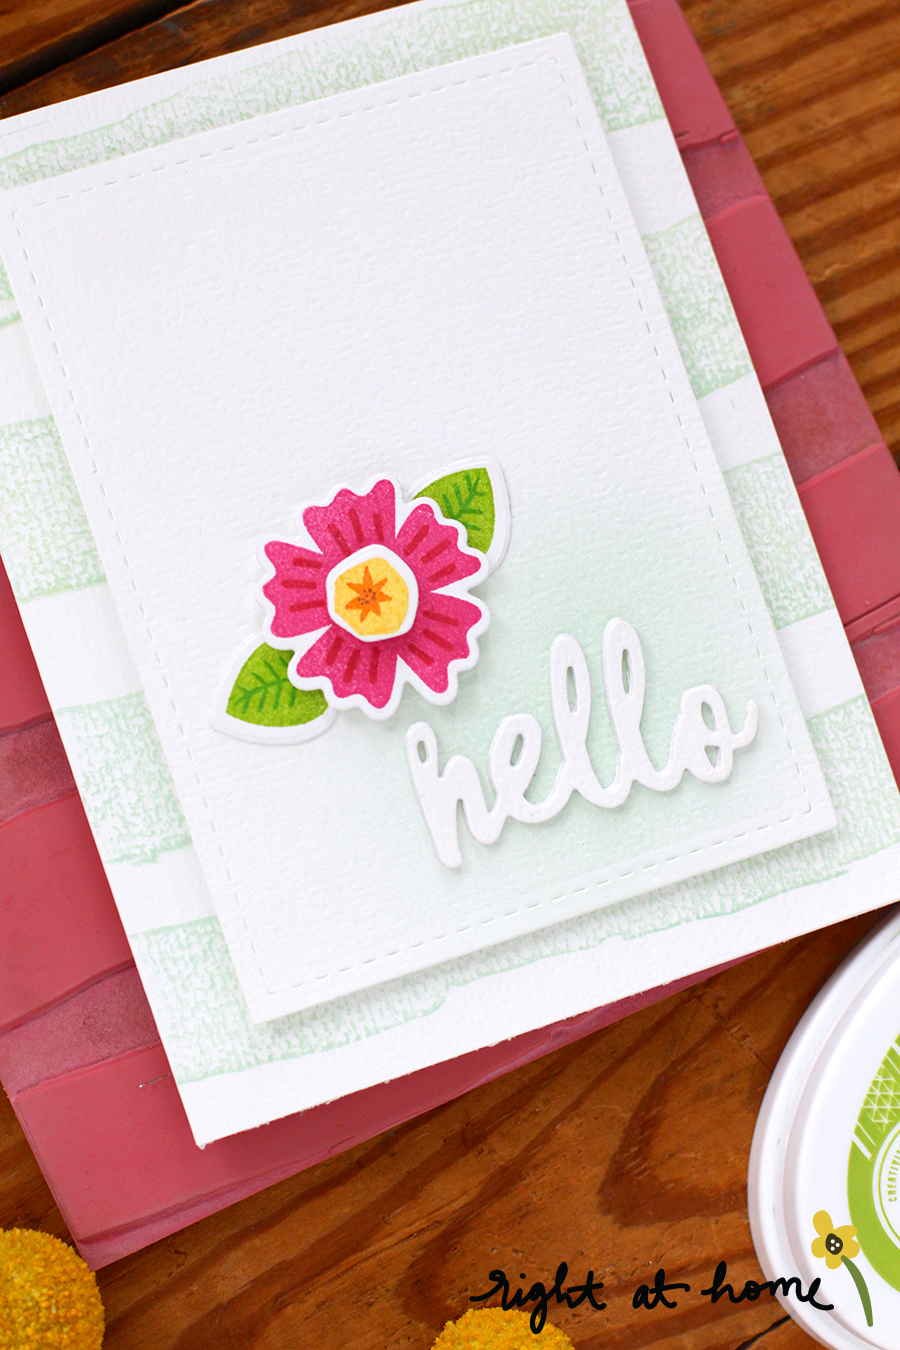 Hello Find the Beauty Clean & Simple Card // National Craft Month with Right at Home + Friends - rightathomeshop.com/blog